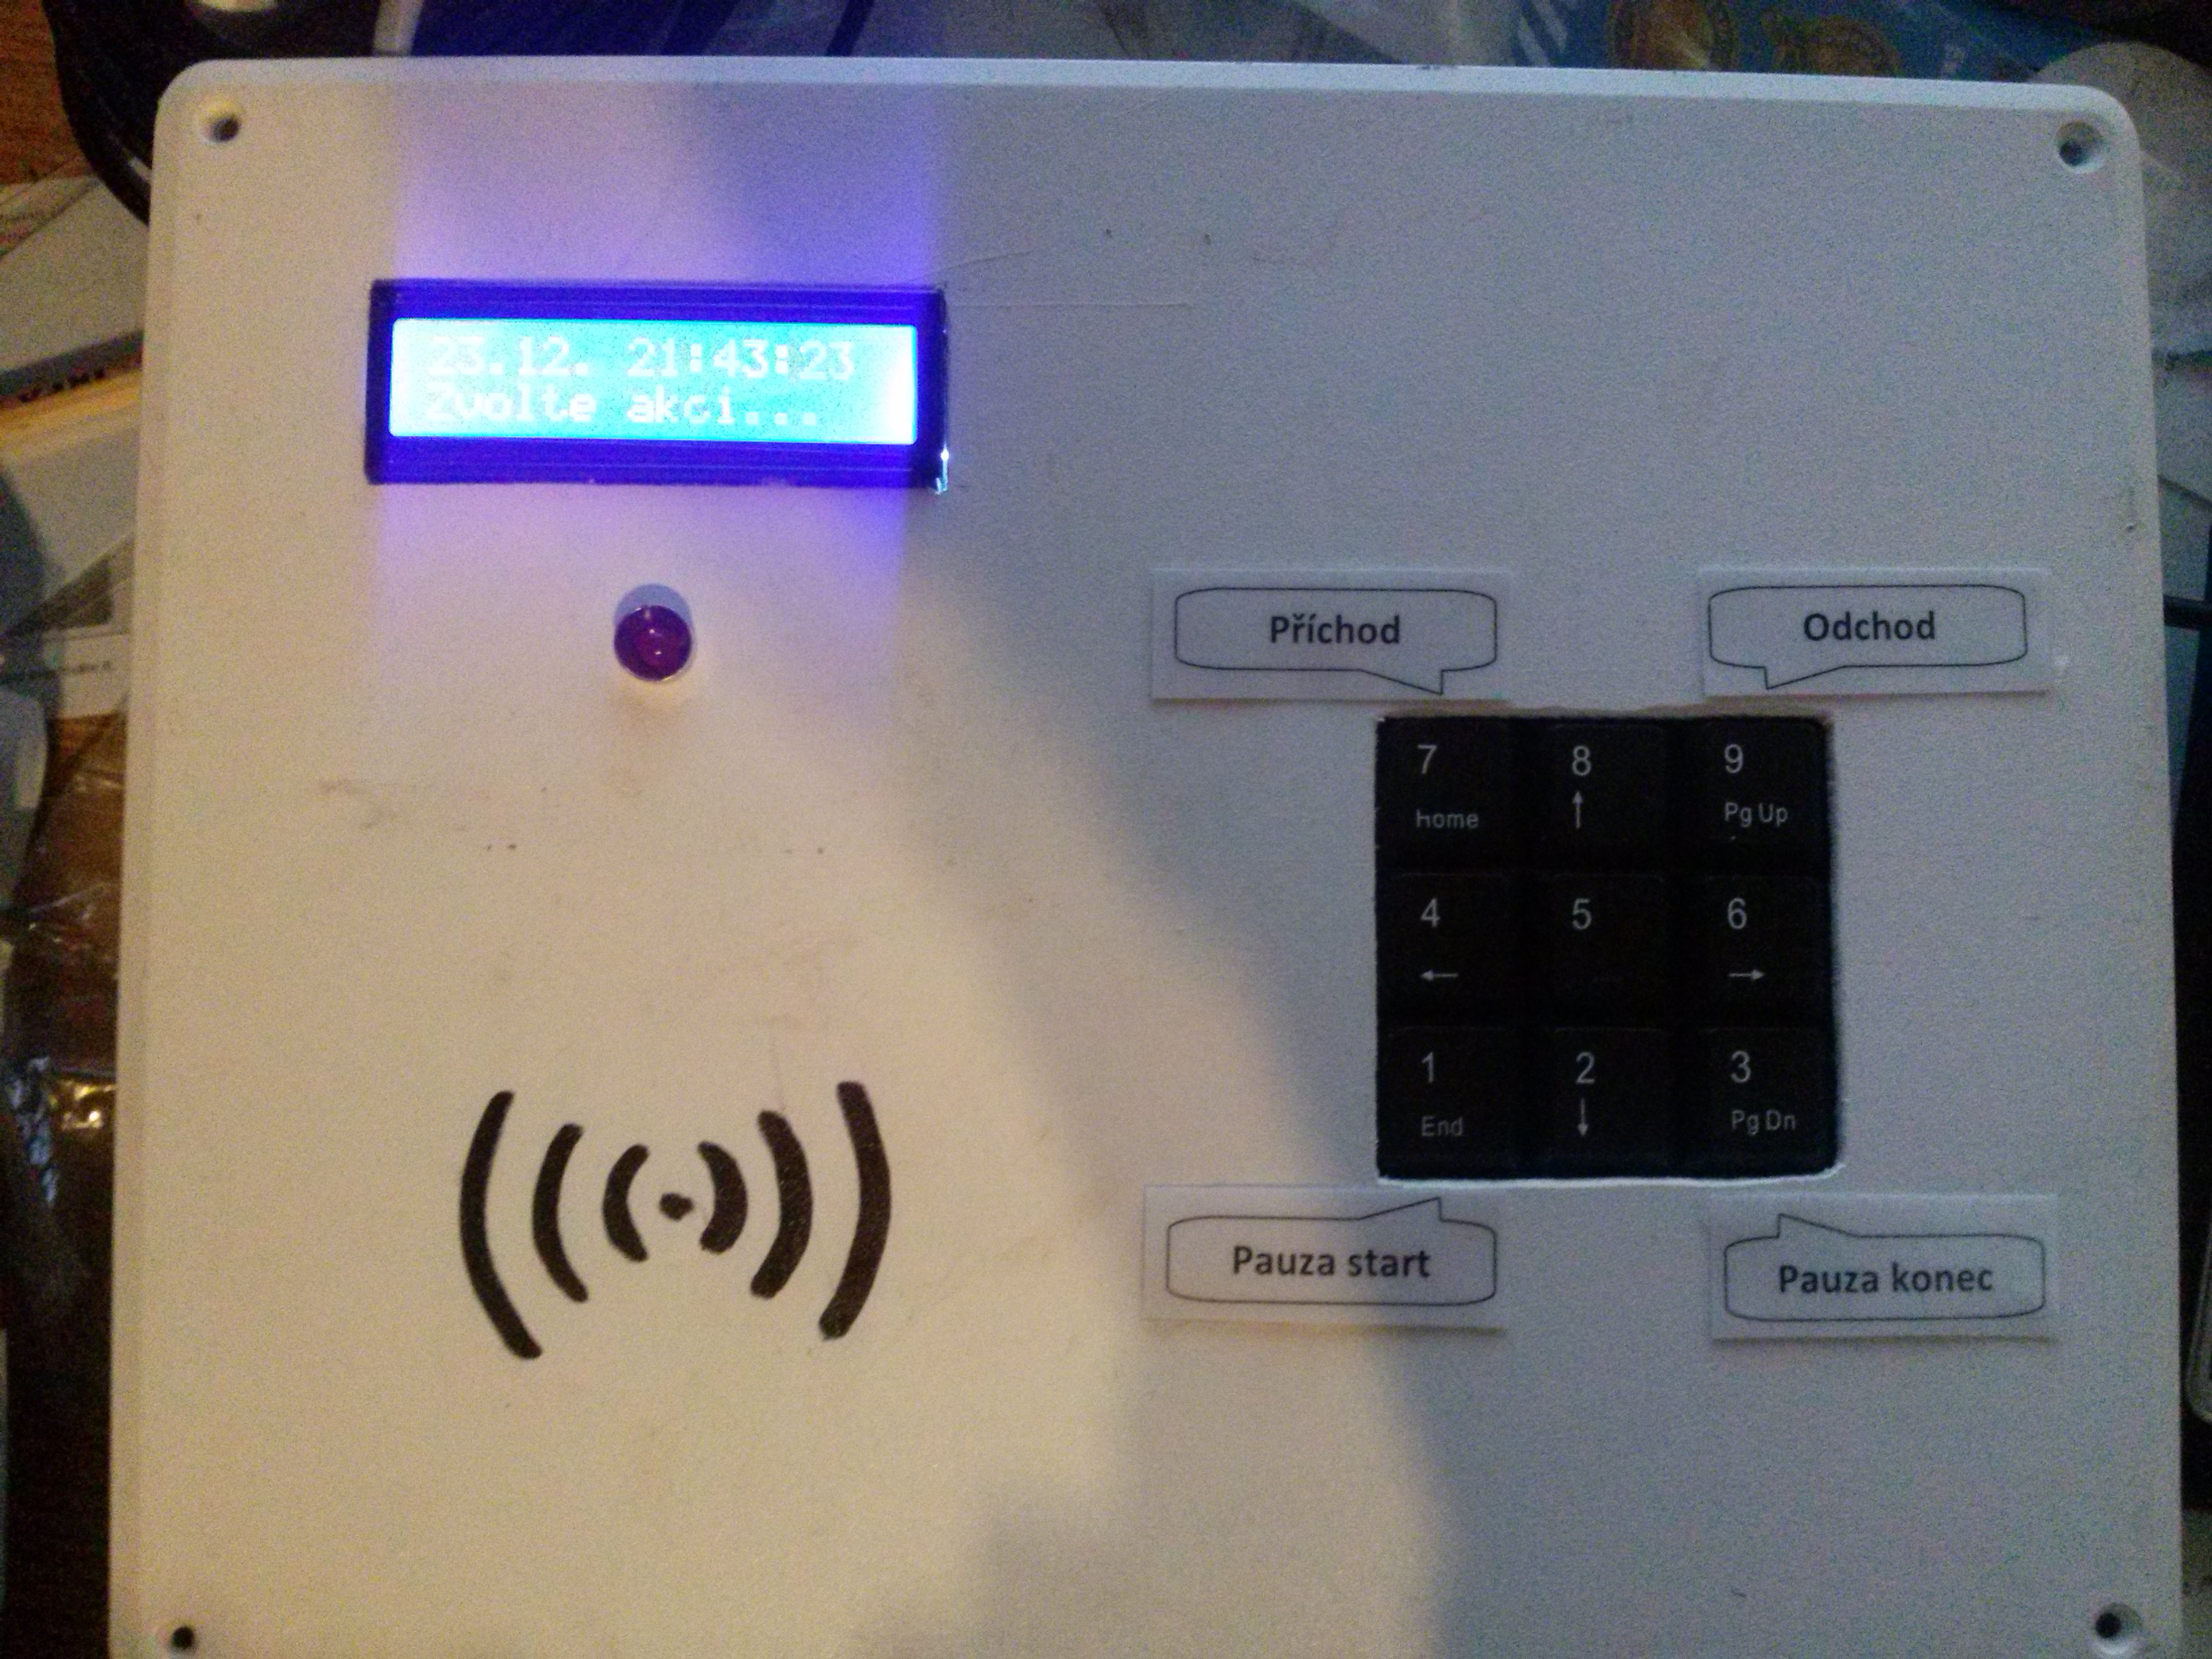 Attendance System Using Raspberry Pi and NFC Tag Reader: 4 Steps